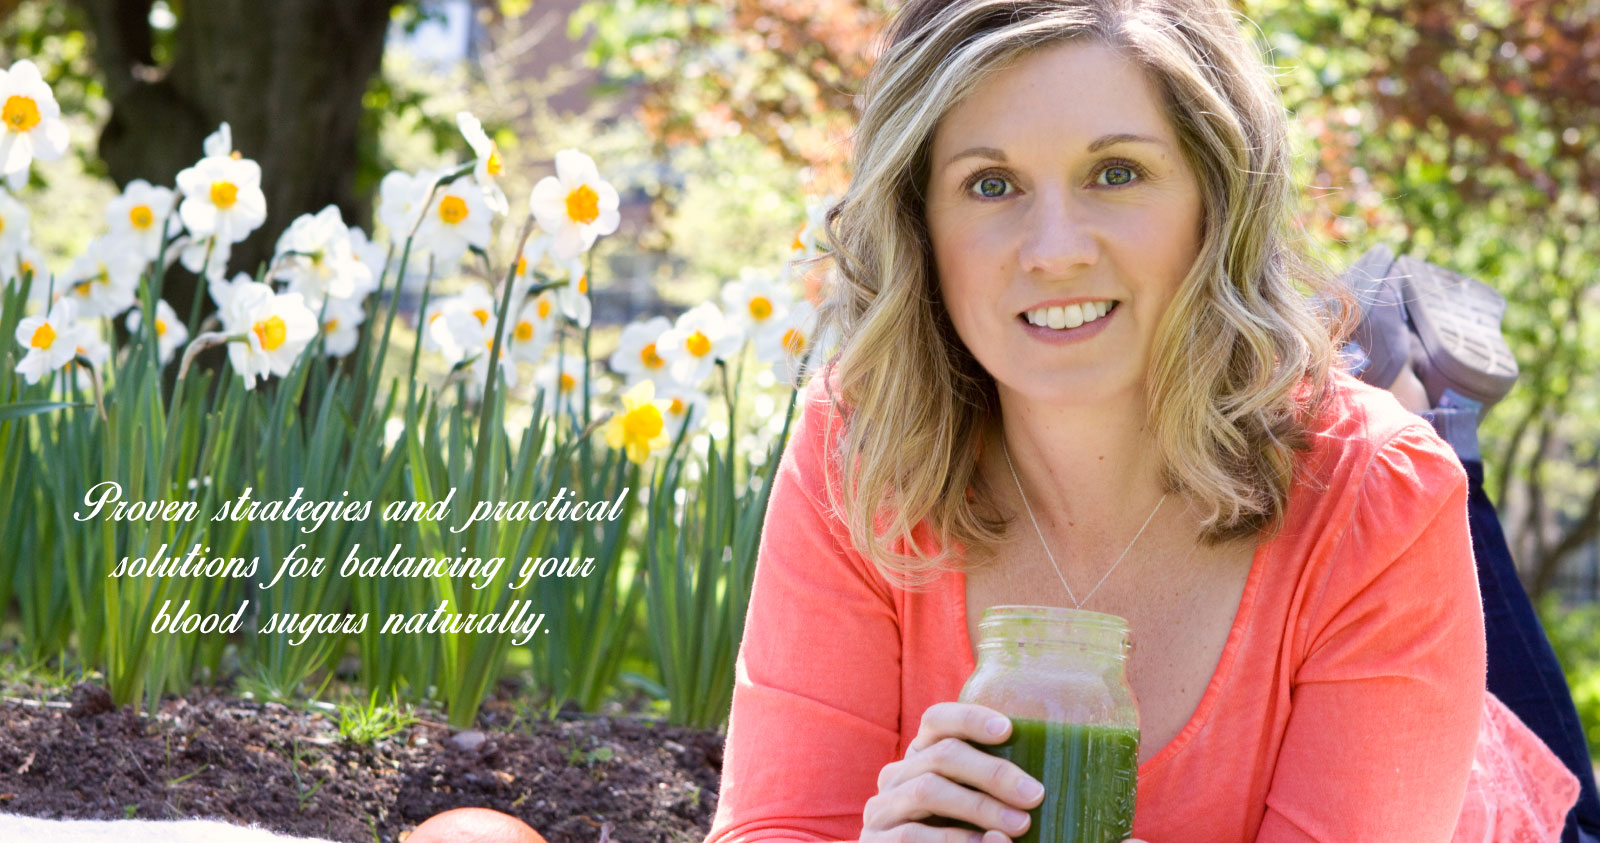 Michelle MacLean, Holistic Health Coach